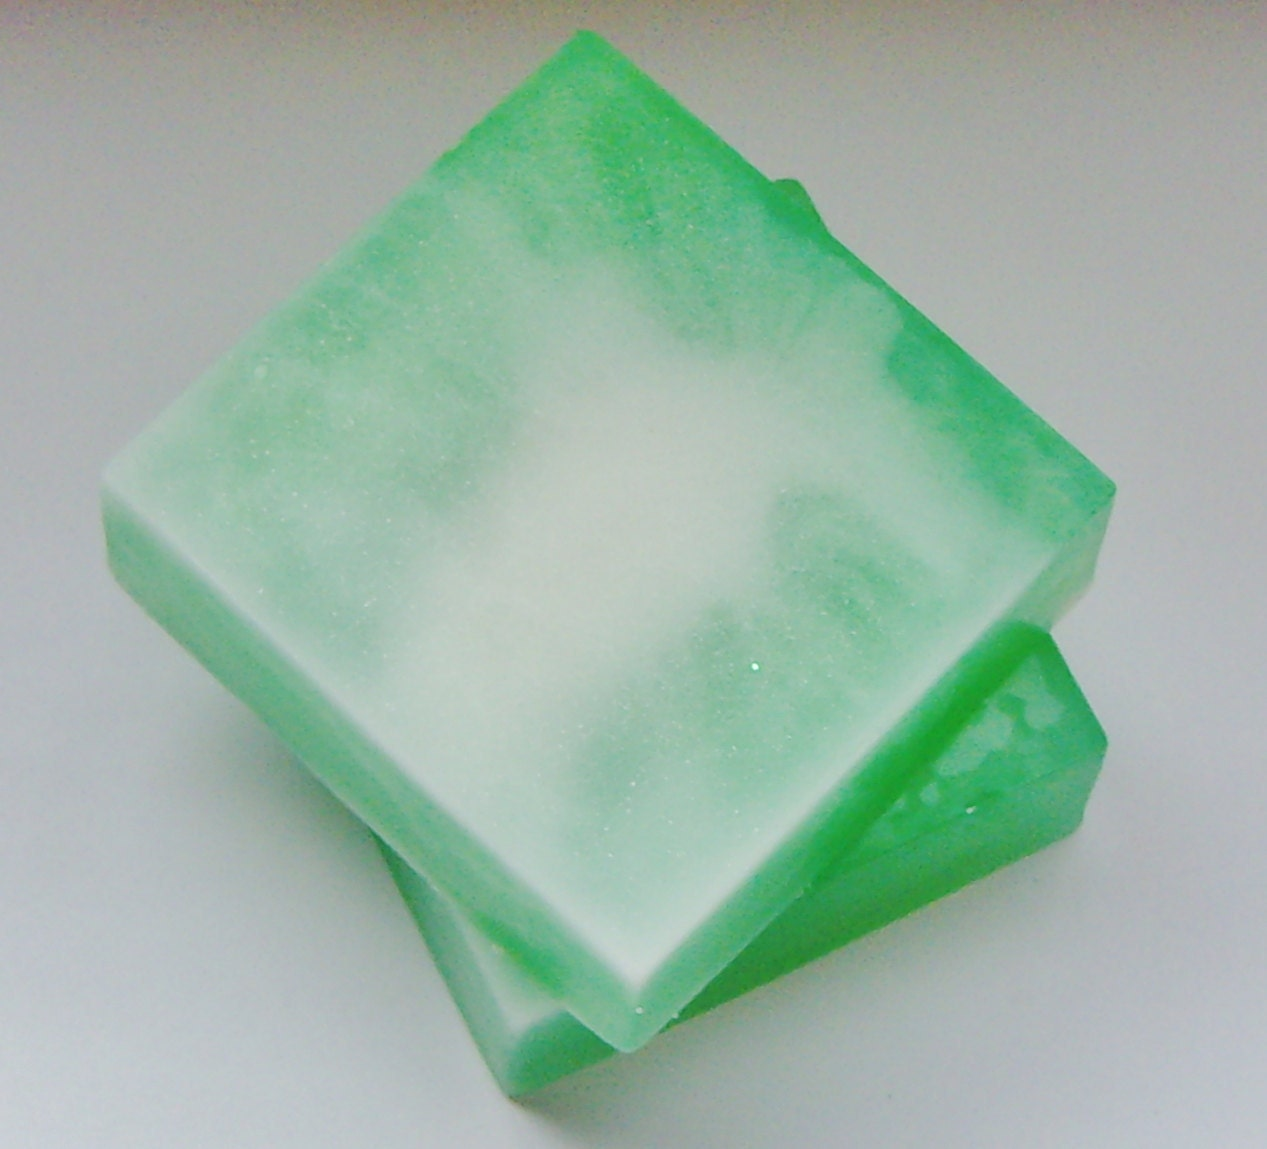 Soap-Sweetgrass and Glycerin-New Look